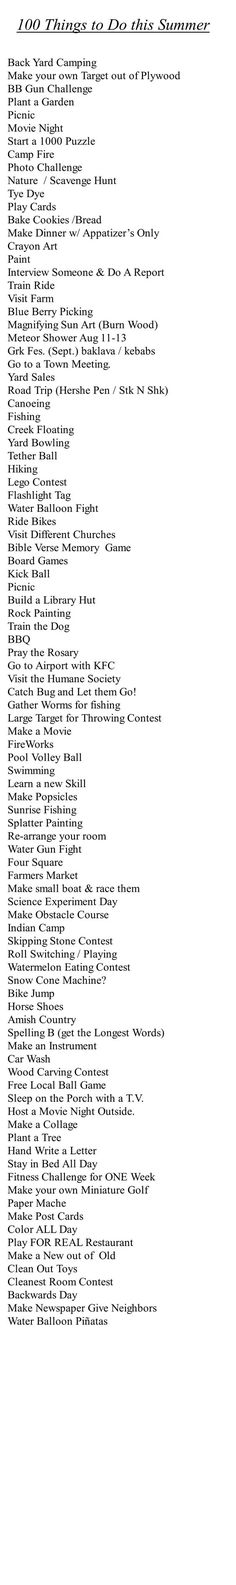 Summer list: 100 Things to Do This Summer. A great list for families. Things to do with the kids. yard sales--I know my friends are laughing) we wouldn't do--but several really good ones. Summer Goals, Summer Fun, Summer Time, Summer Ideas, Summer Things, Fun Ideas, Fun Things, Teen Summer, Summer Nights